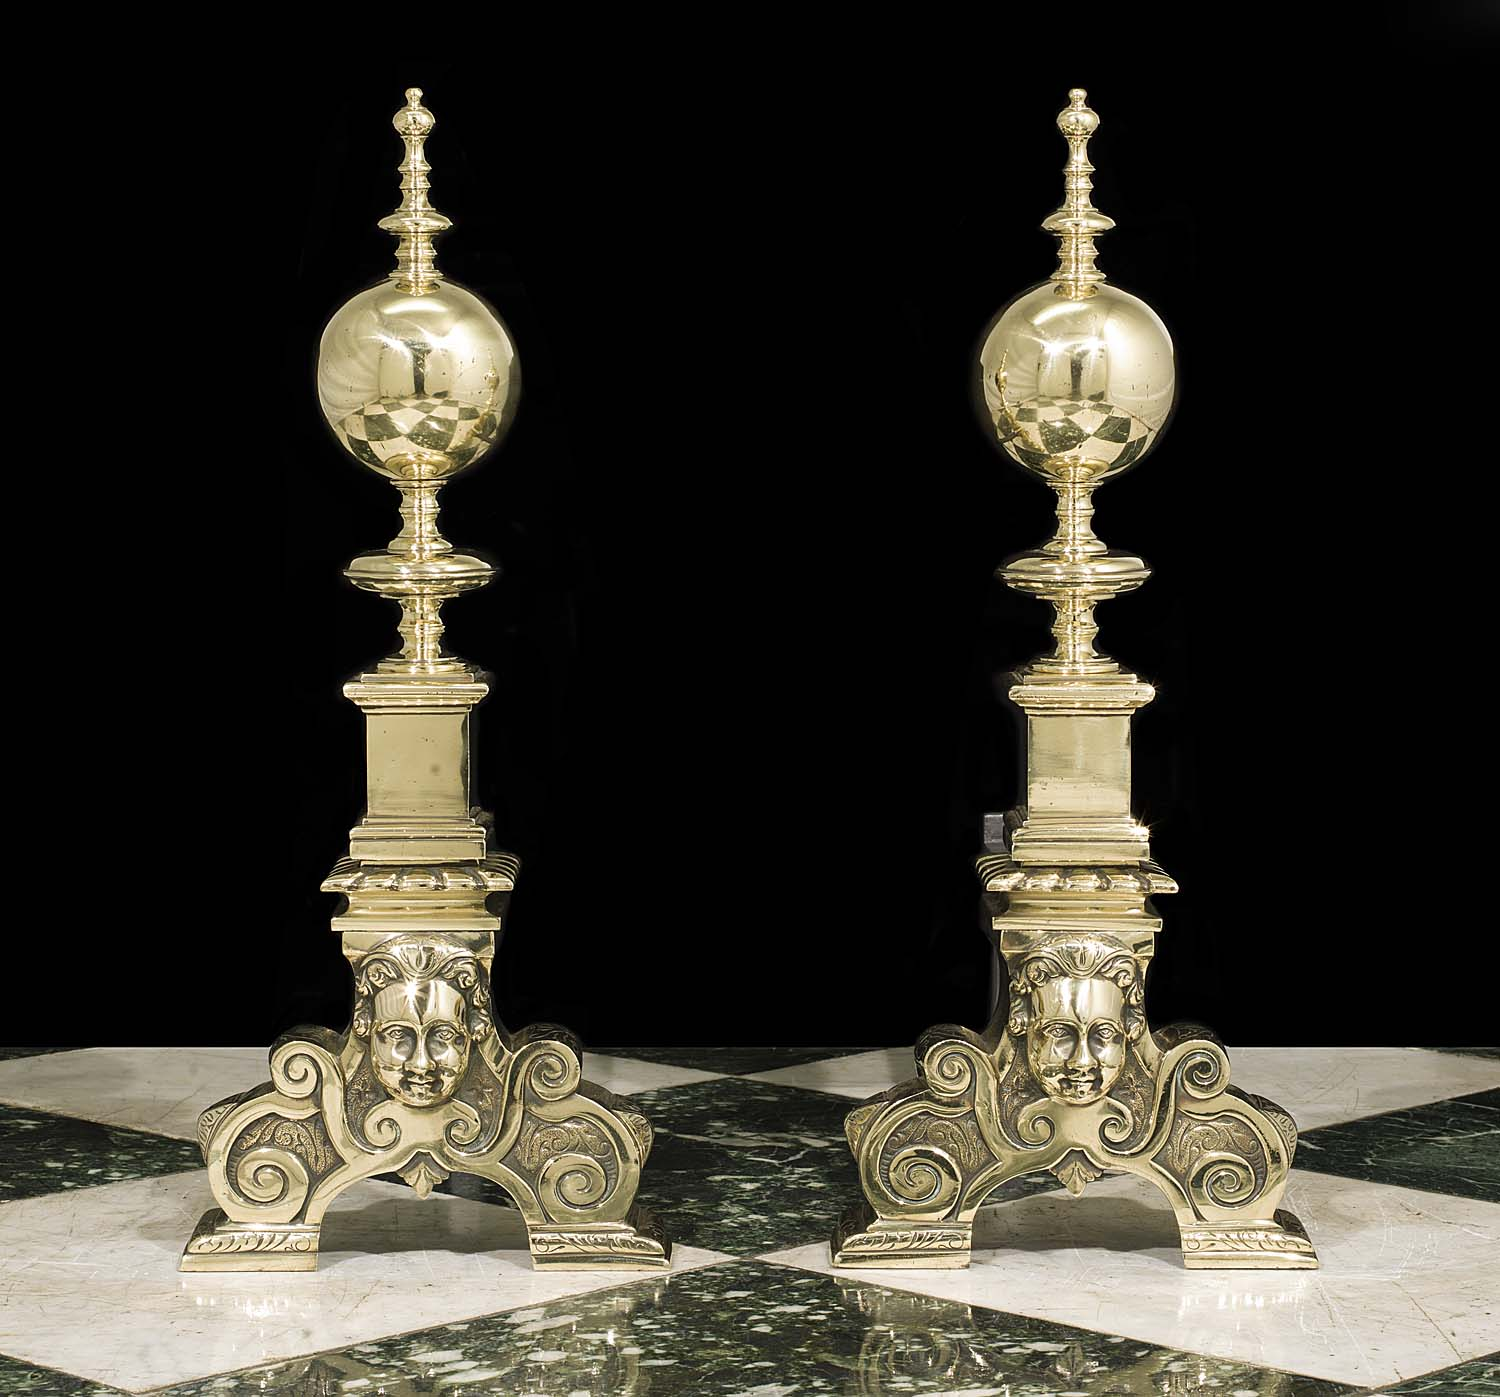 A tall pair of antique brass andirons in the Baroque style